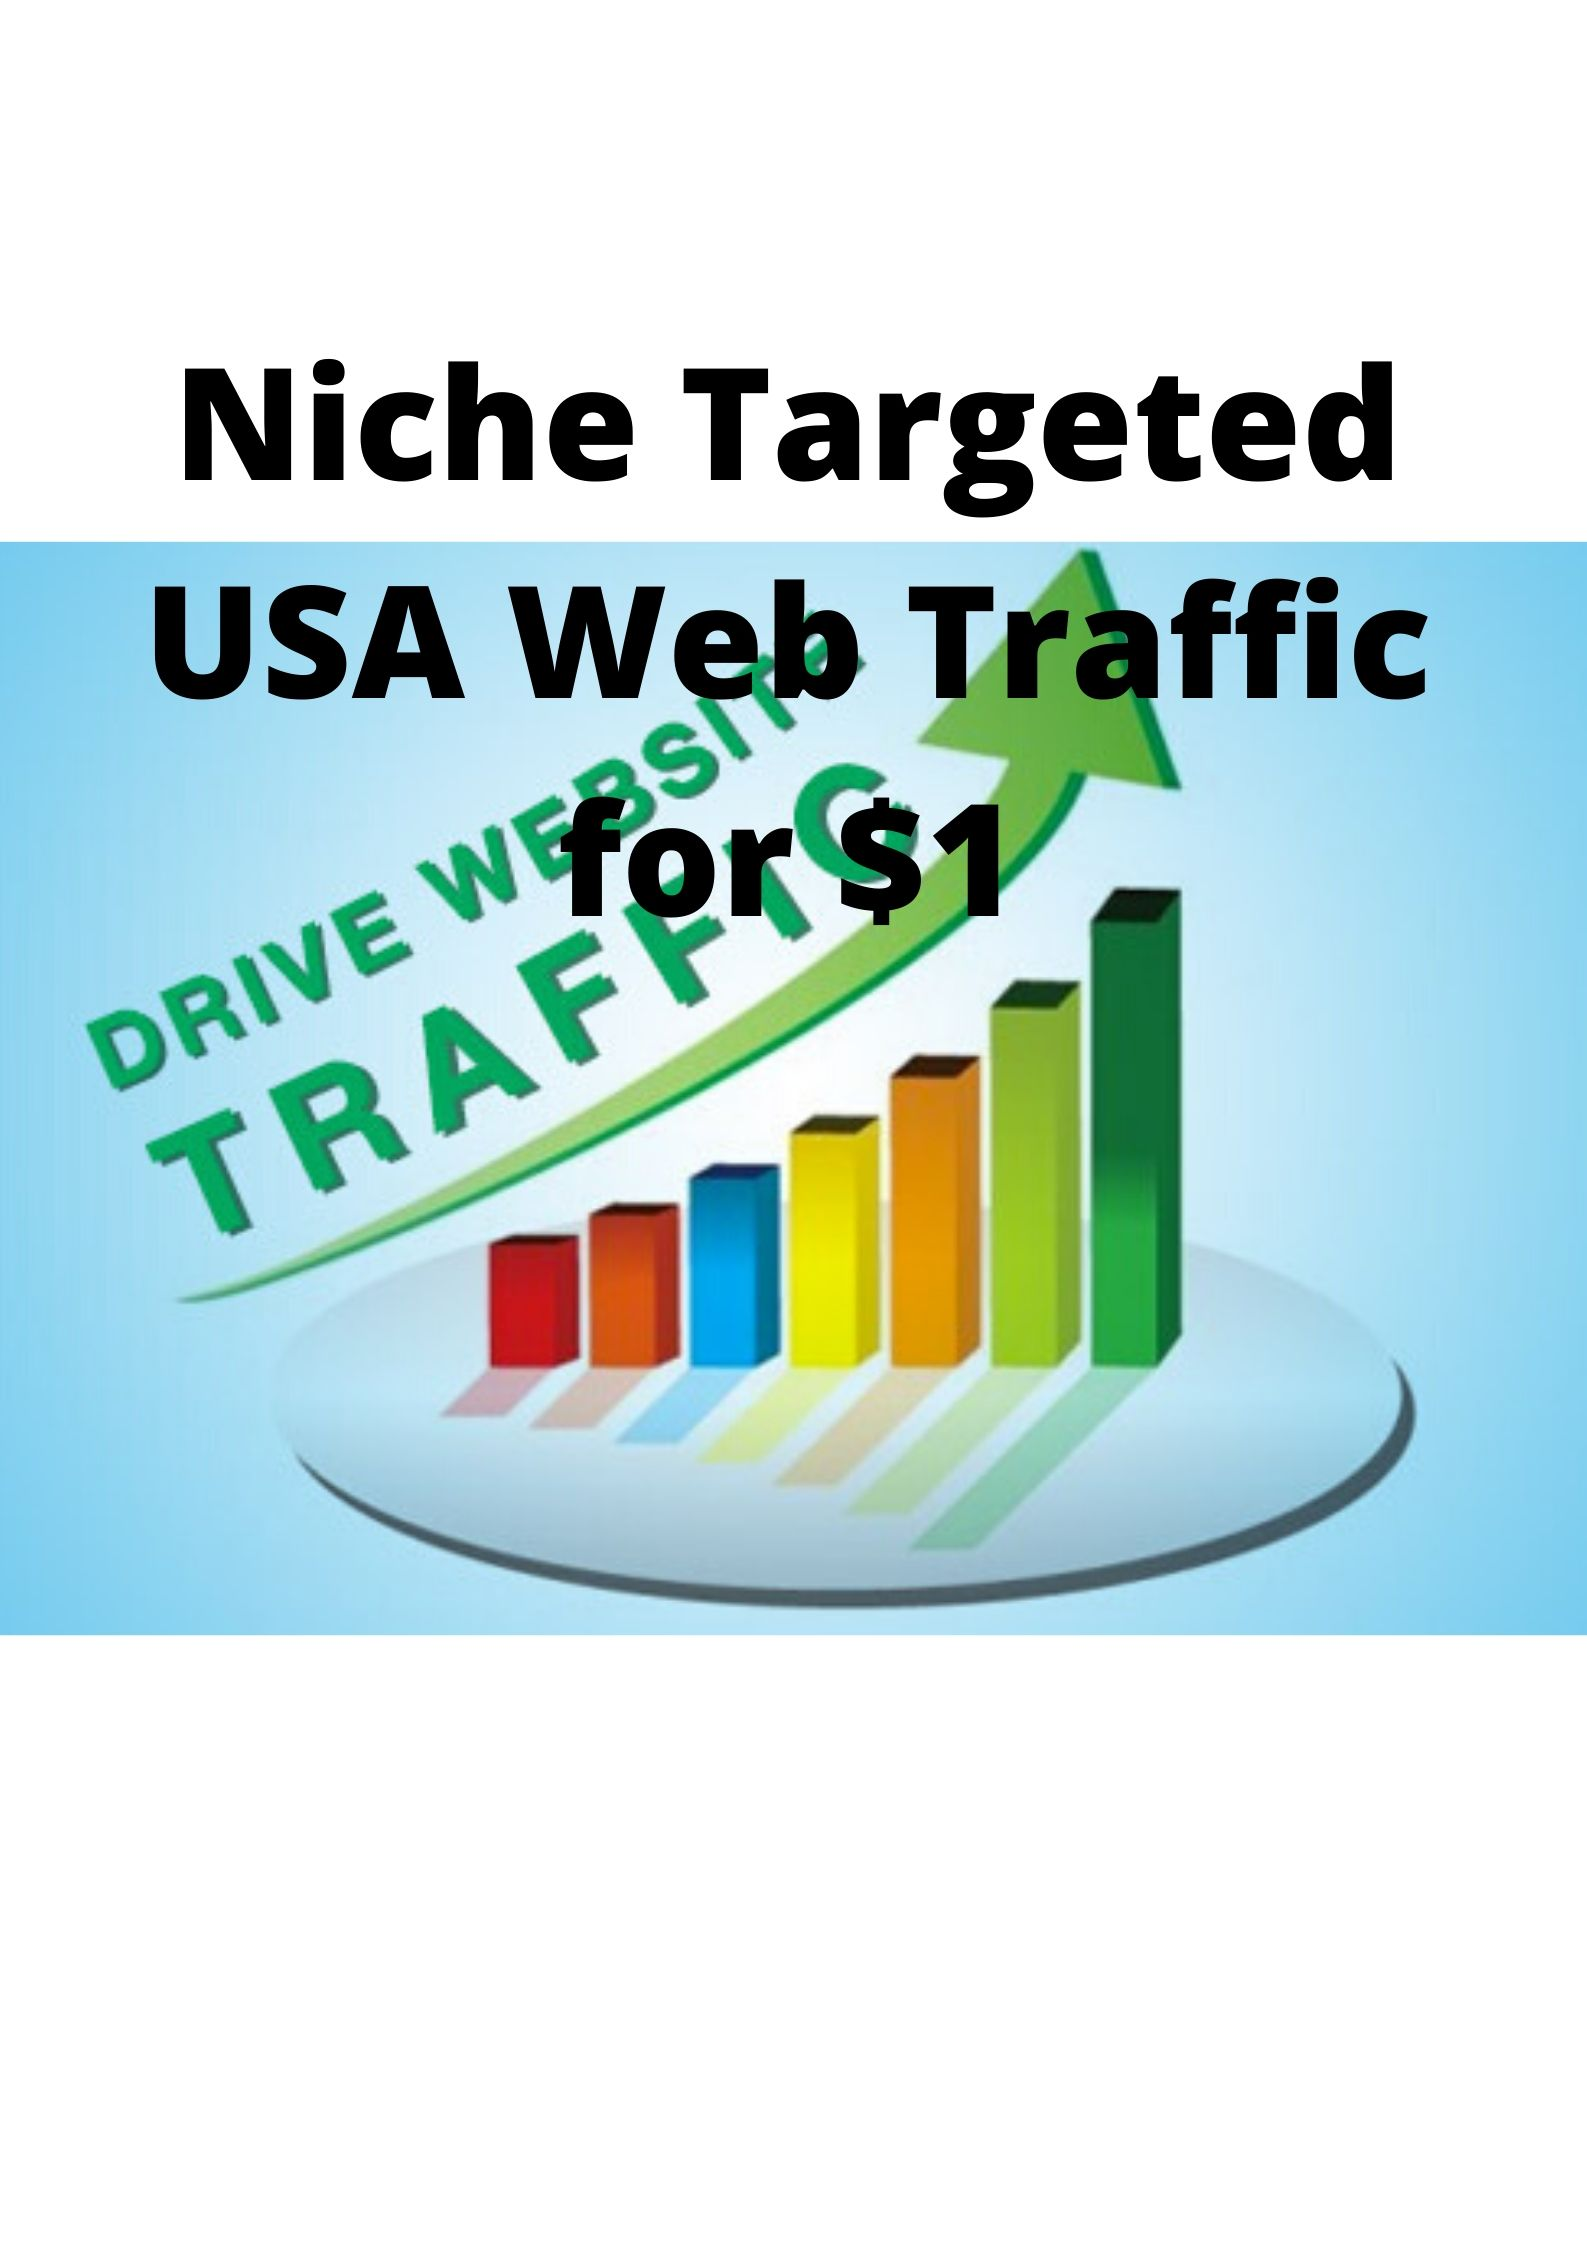 Niche Targeted USA Web Traffic Within Committed Time Period